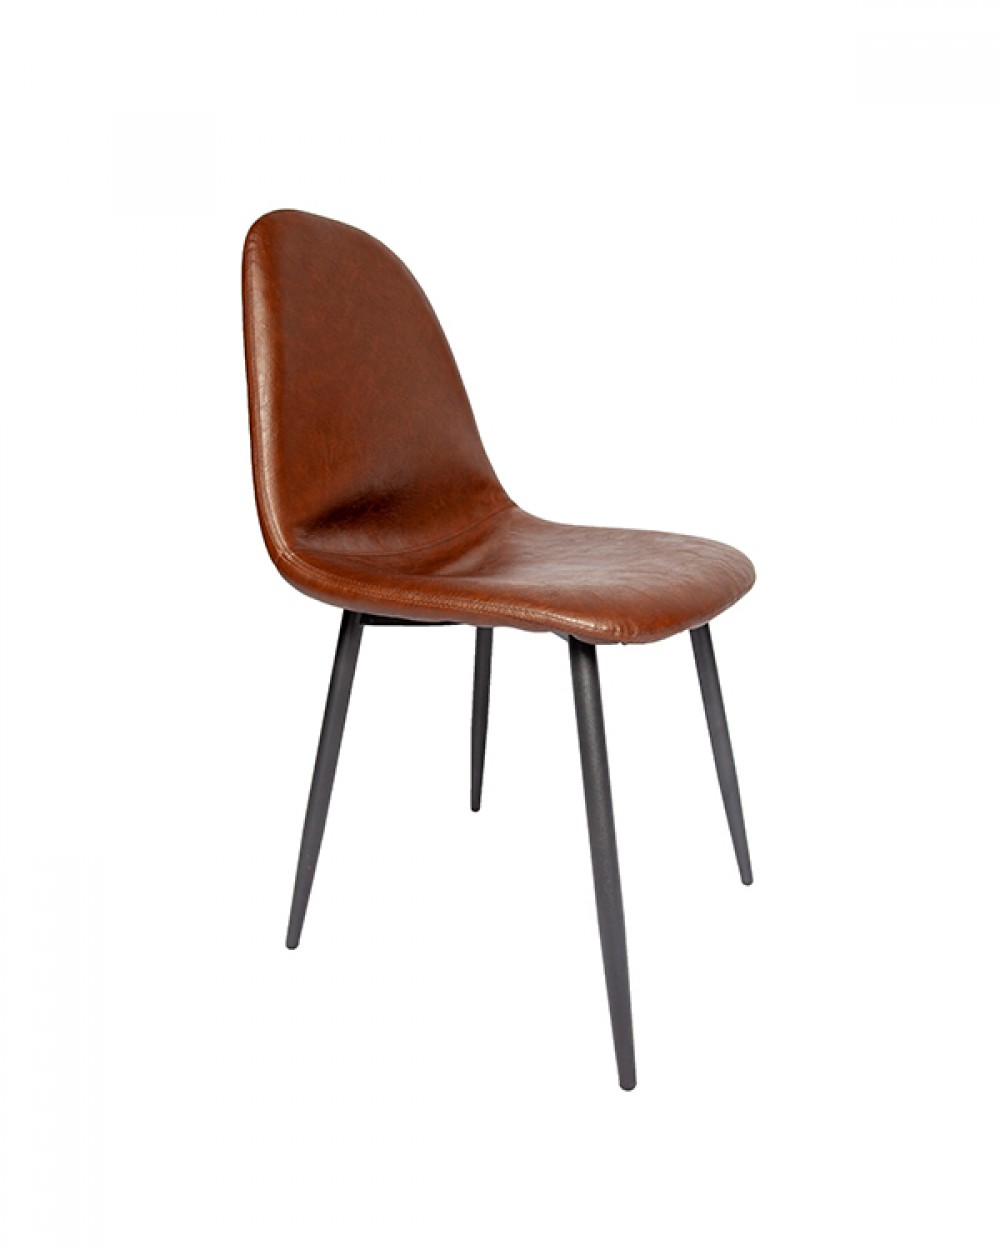 Oslo Dining Chair (PU Leather)